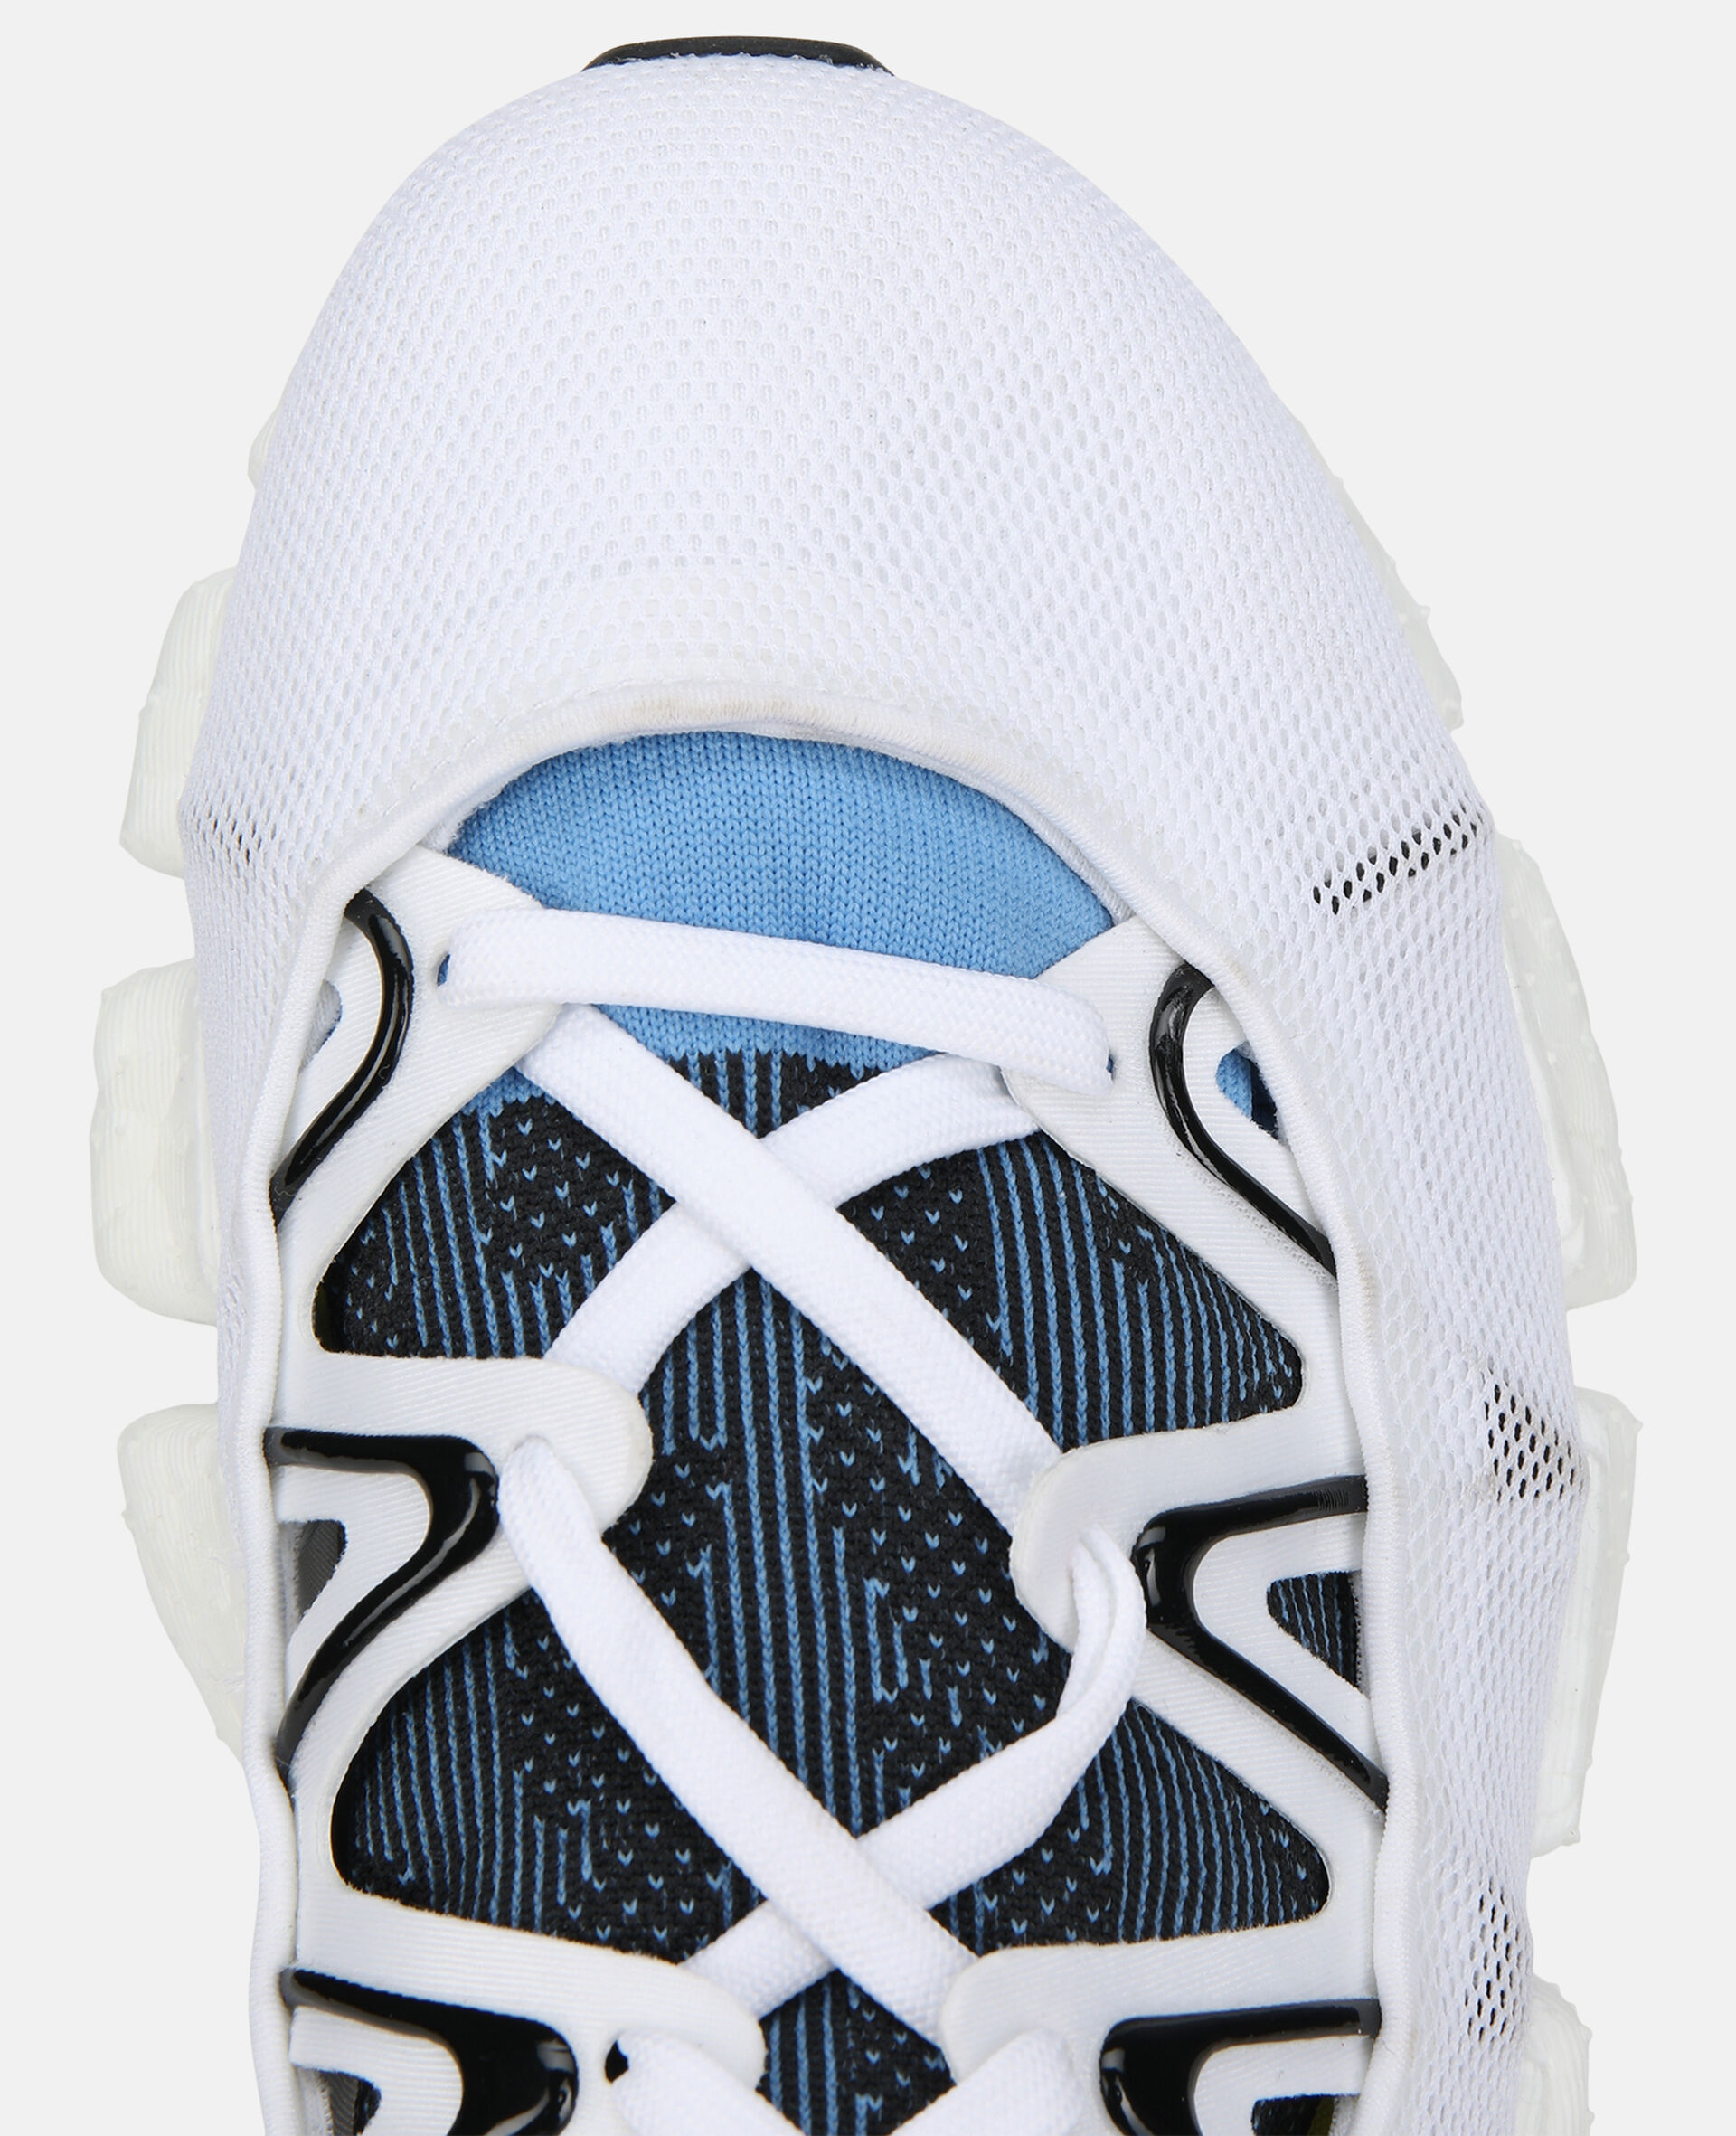 ClimaCool Vento 3-in-1 Sportschuhe -Weiß-large image number 3